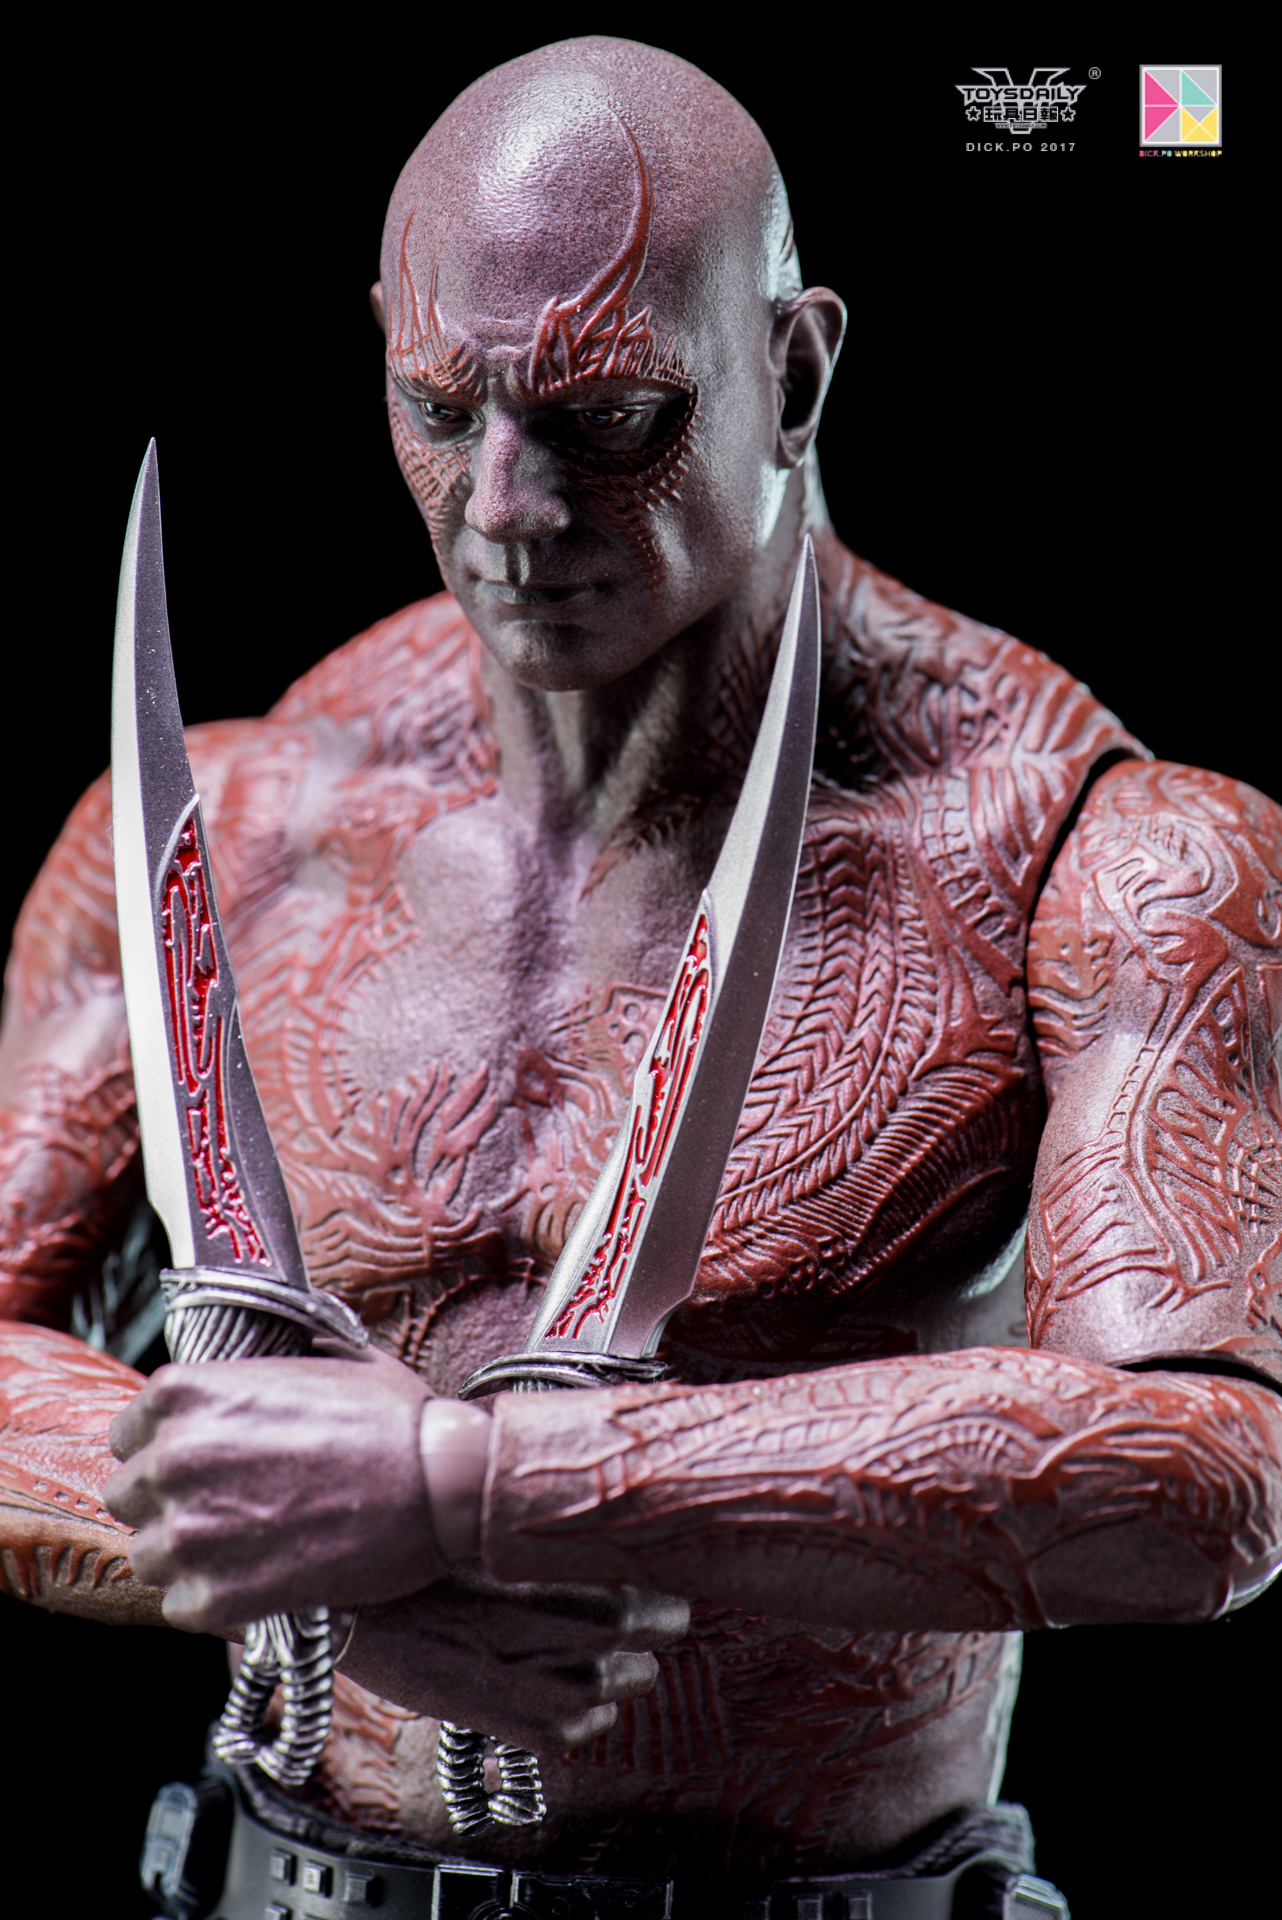 toysdaily_dick.po_Hottoys_DARX-41.jpg